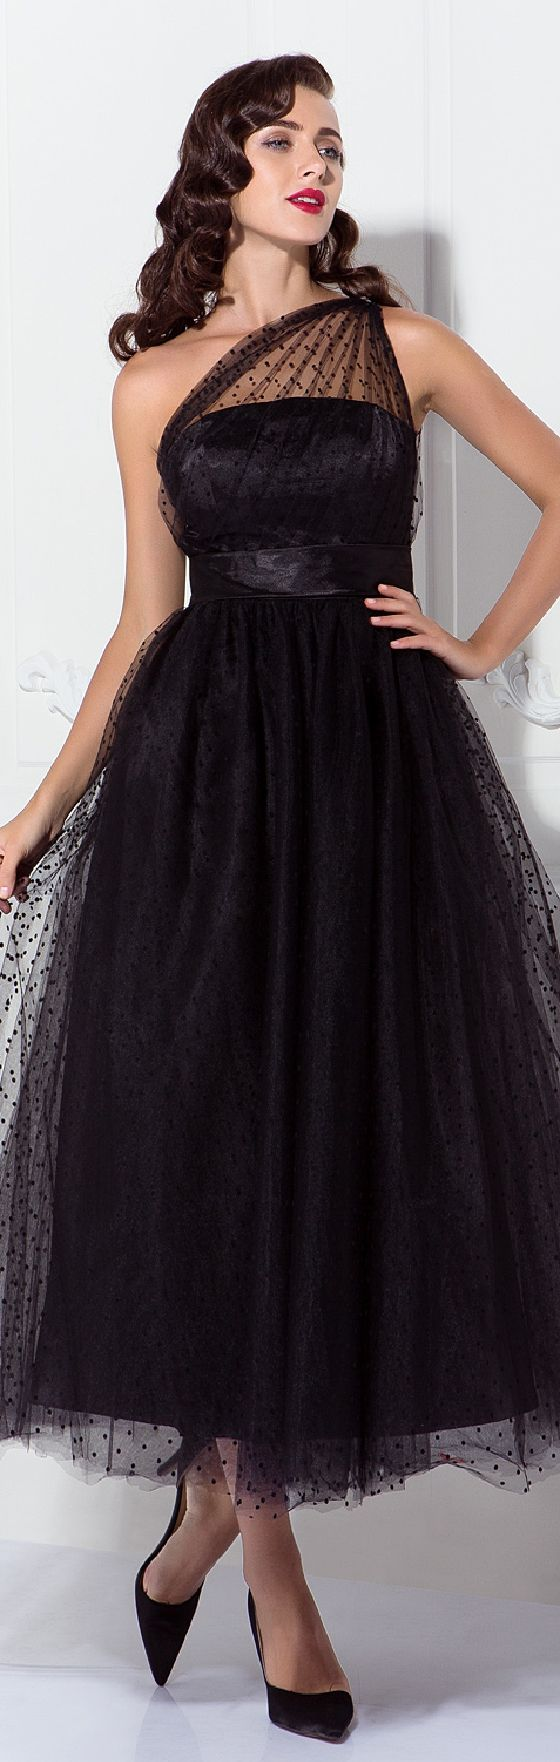 99 99 A Line Vintage Cocktail Party Prom Dress One Shoulder Sleeveless Ankle Length Tulle With Pleats Pattern Print 2021 Wedding Party Dresses Sweetheart Prom Dress Pretty Dresses [ 1762 x 560 Pixel ]